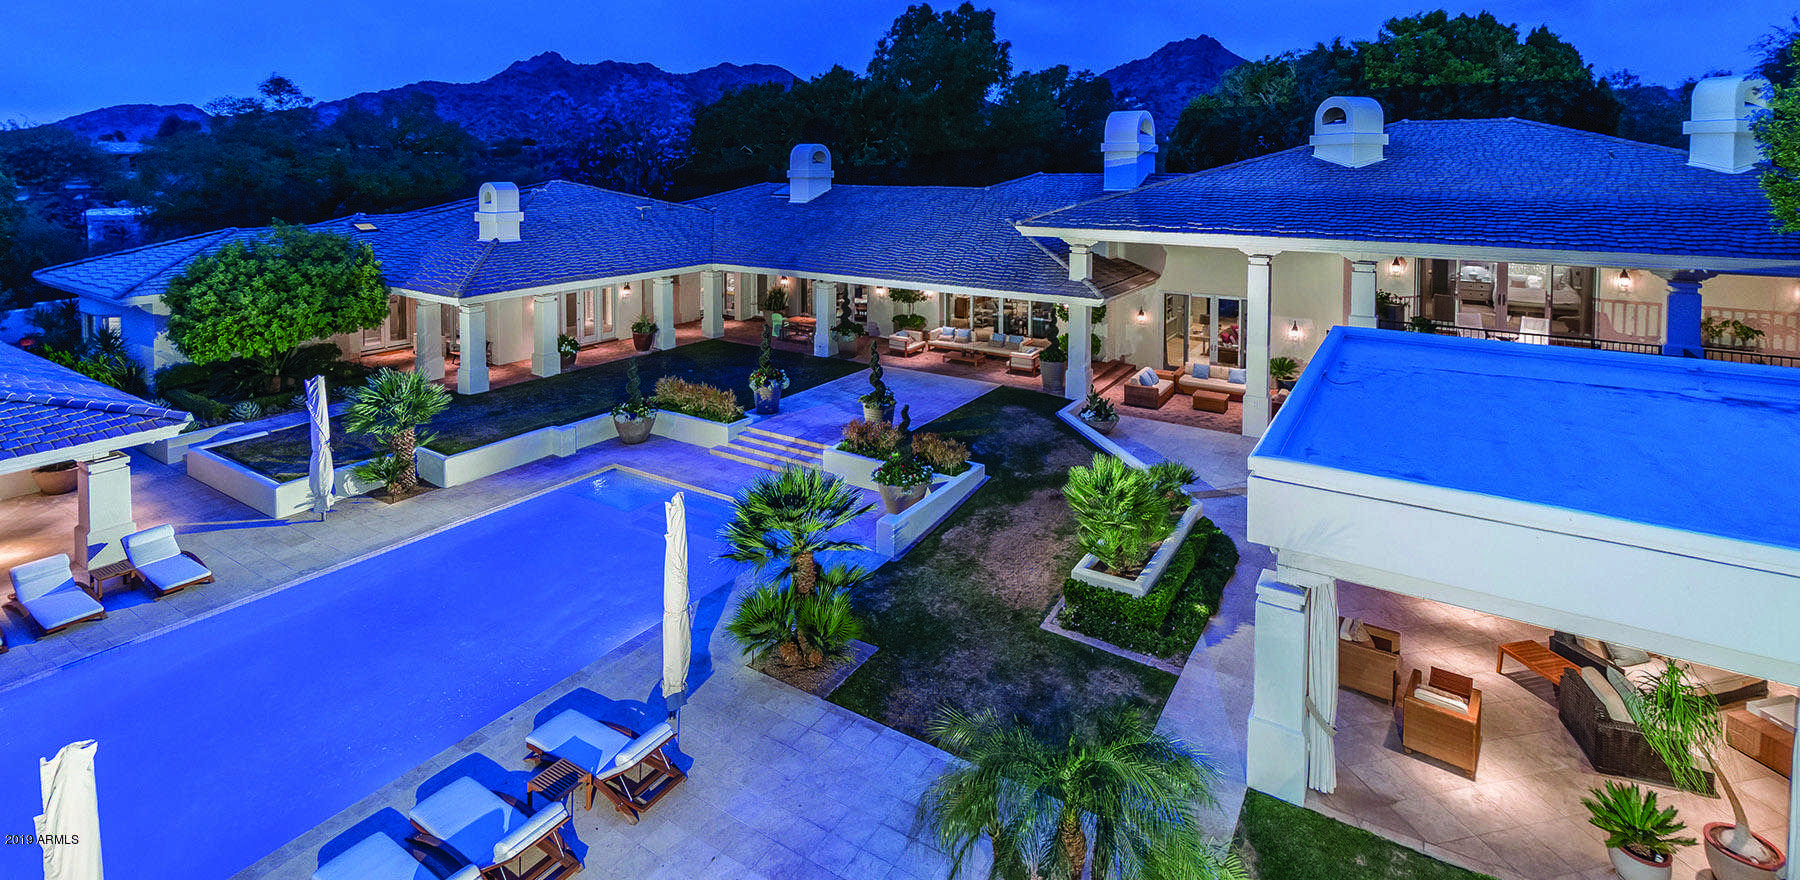 $8,500,000 - 7Br/8Ba - Home for Sale in Palo Verde Foothills 1, Paradise Valley